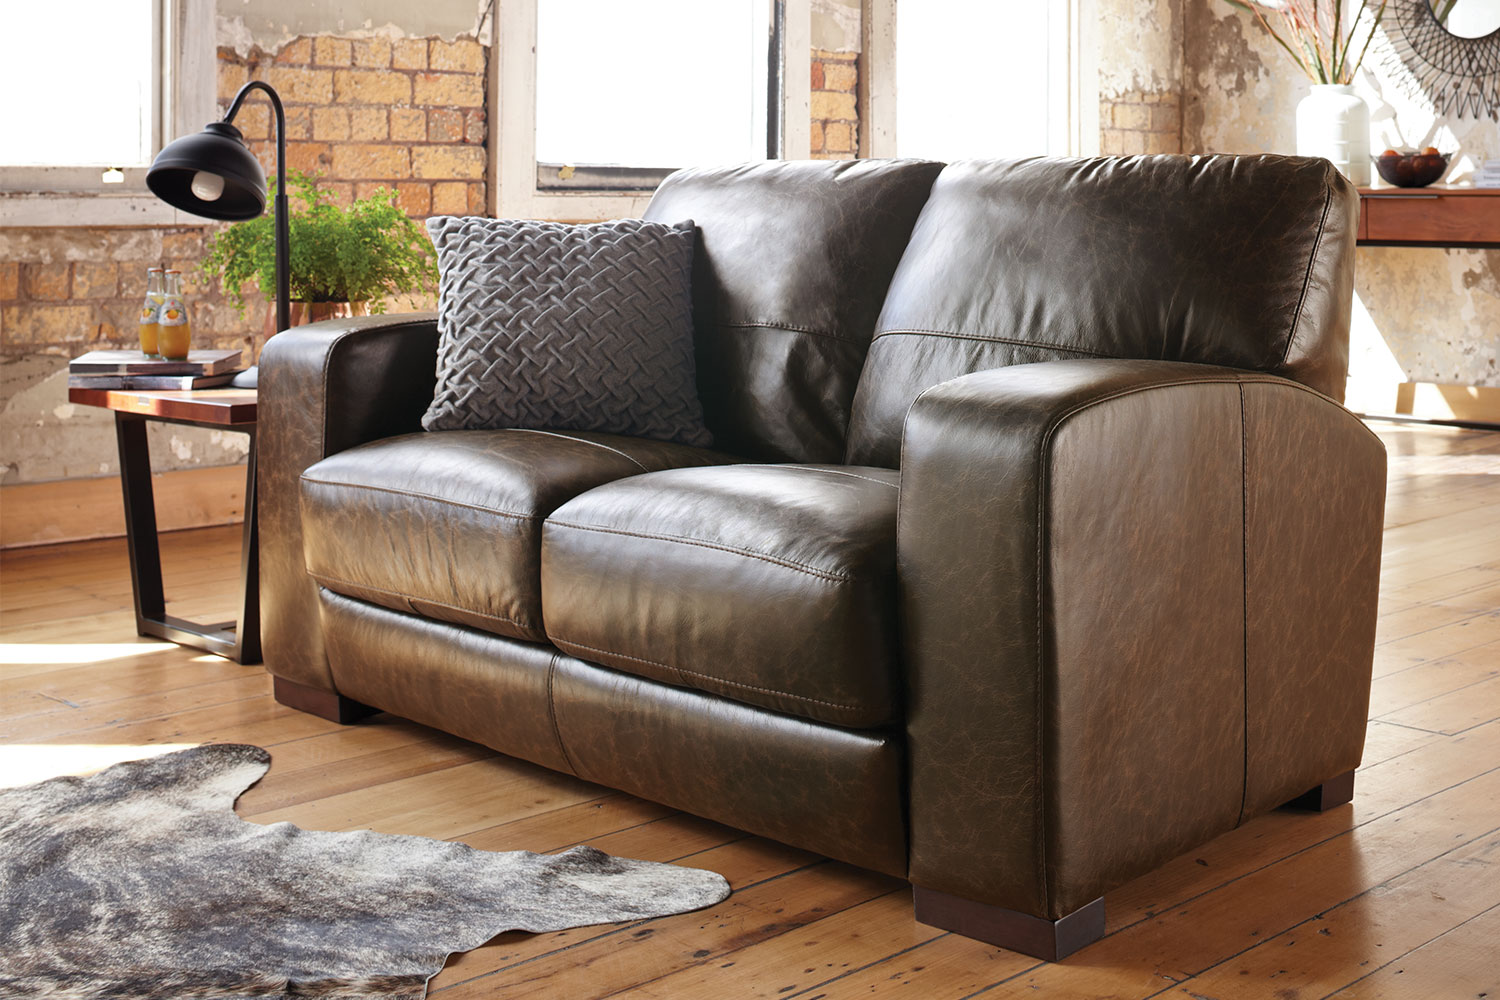 2 seater sofa new zealand two slipcovers caprizi leather by debonaire furniture